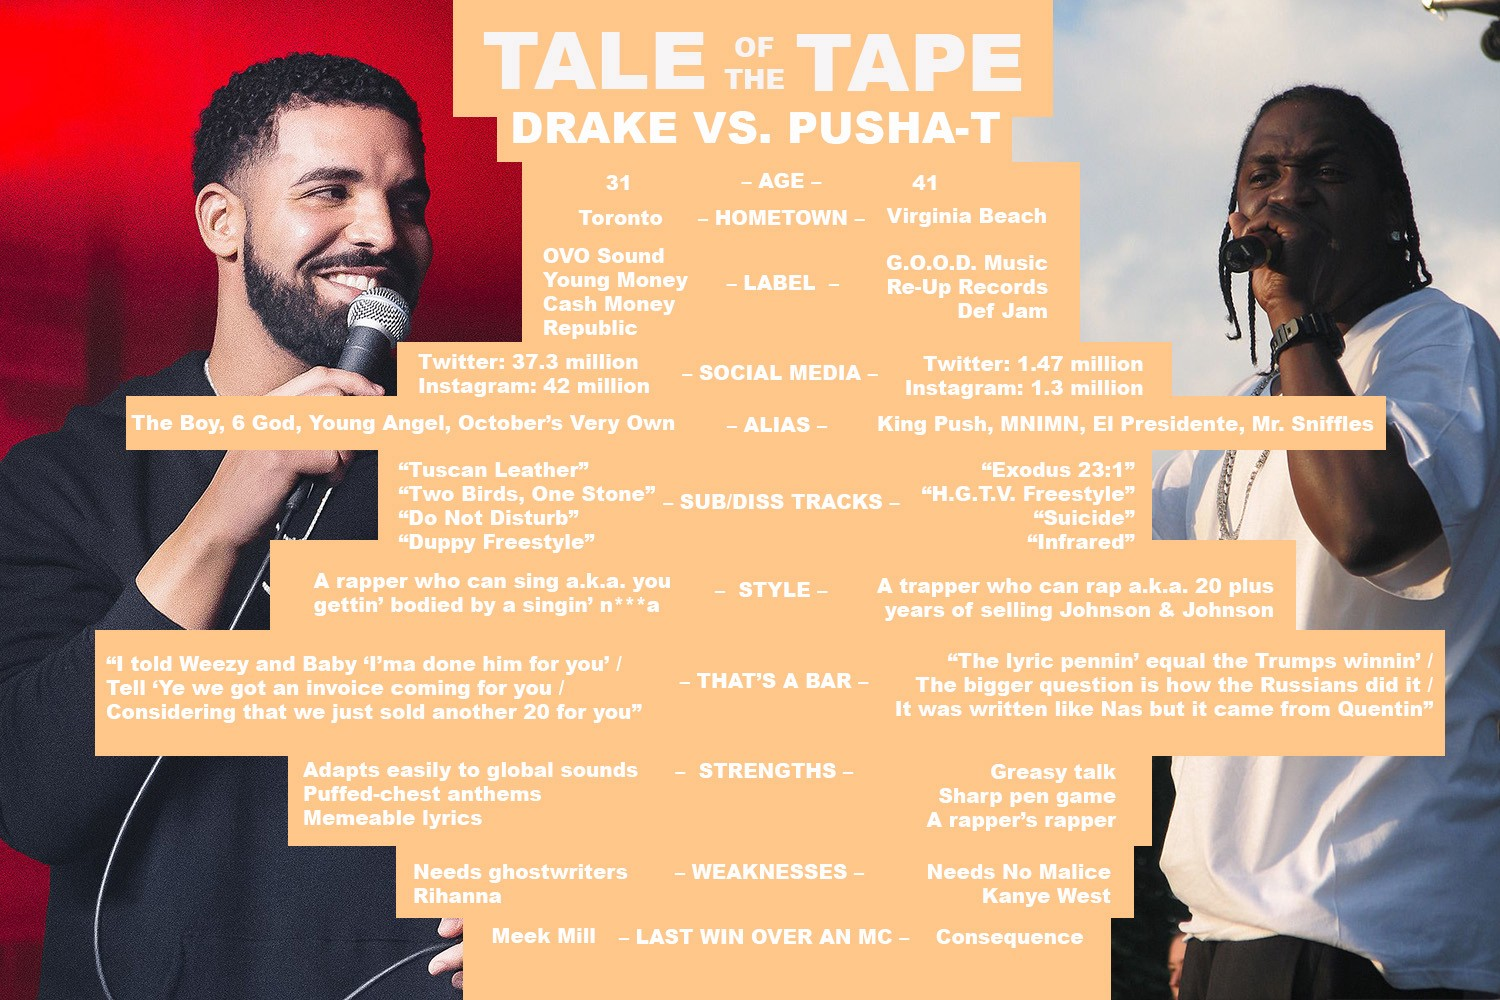 0cc95854b9527 Tale of the Tape  Drake vs. Pusha T – Eric Diep – Medium